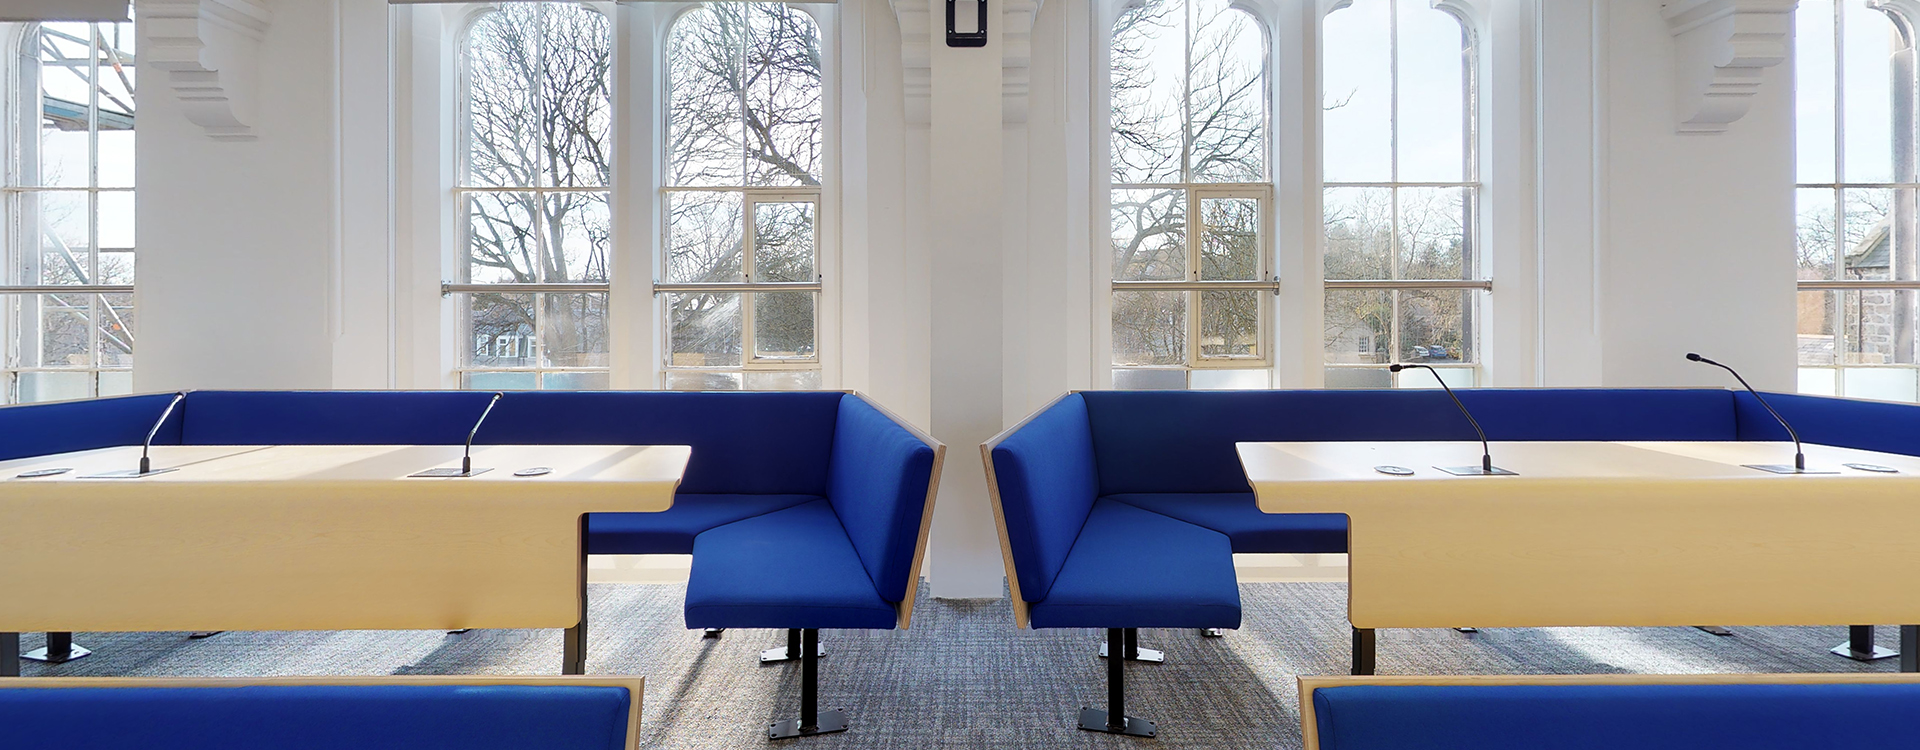 Collaborative Bench Seating at the University of Aberdeen